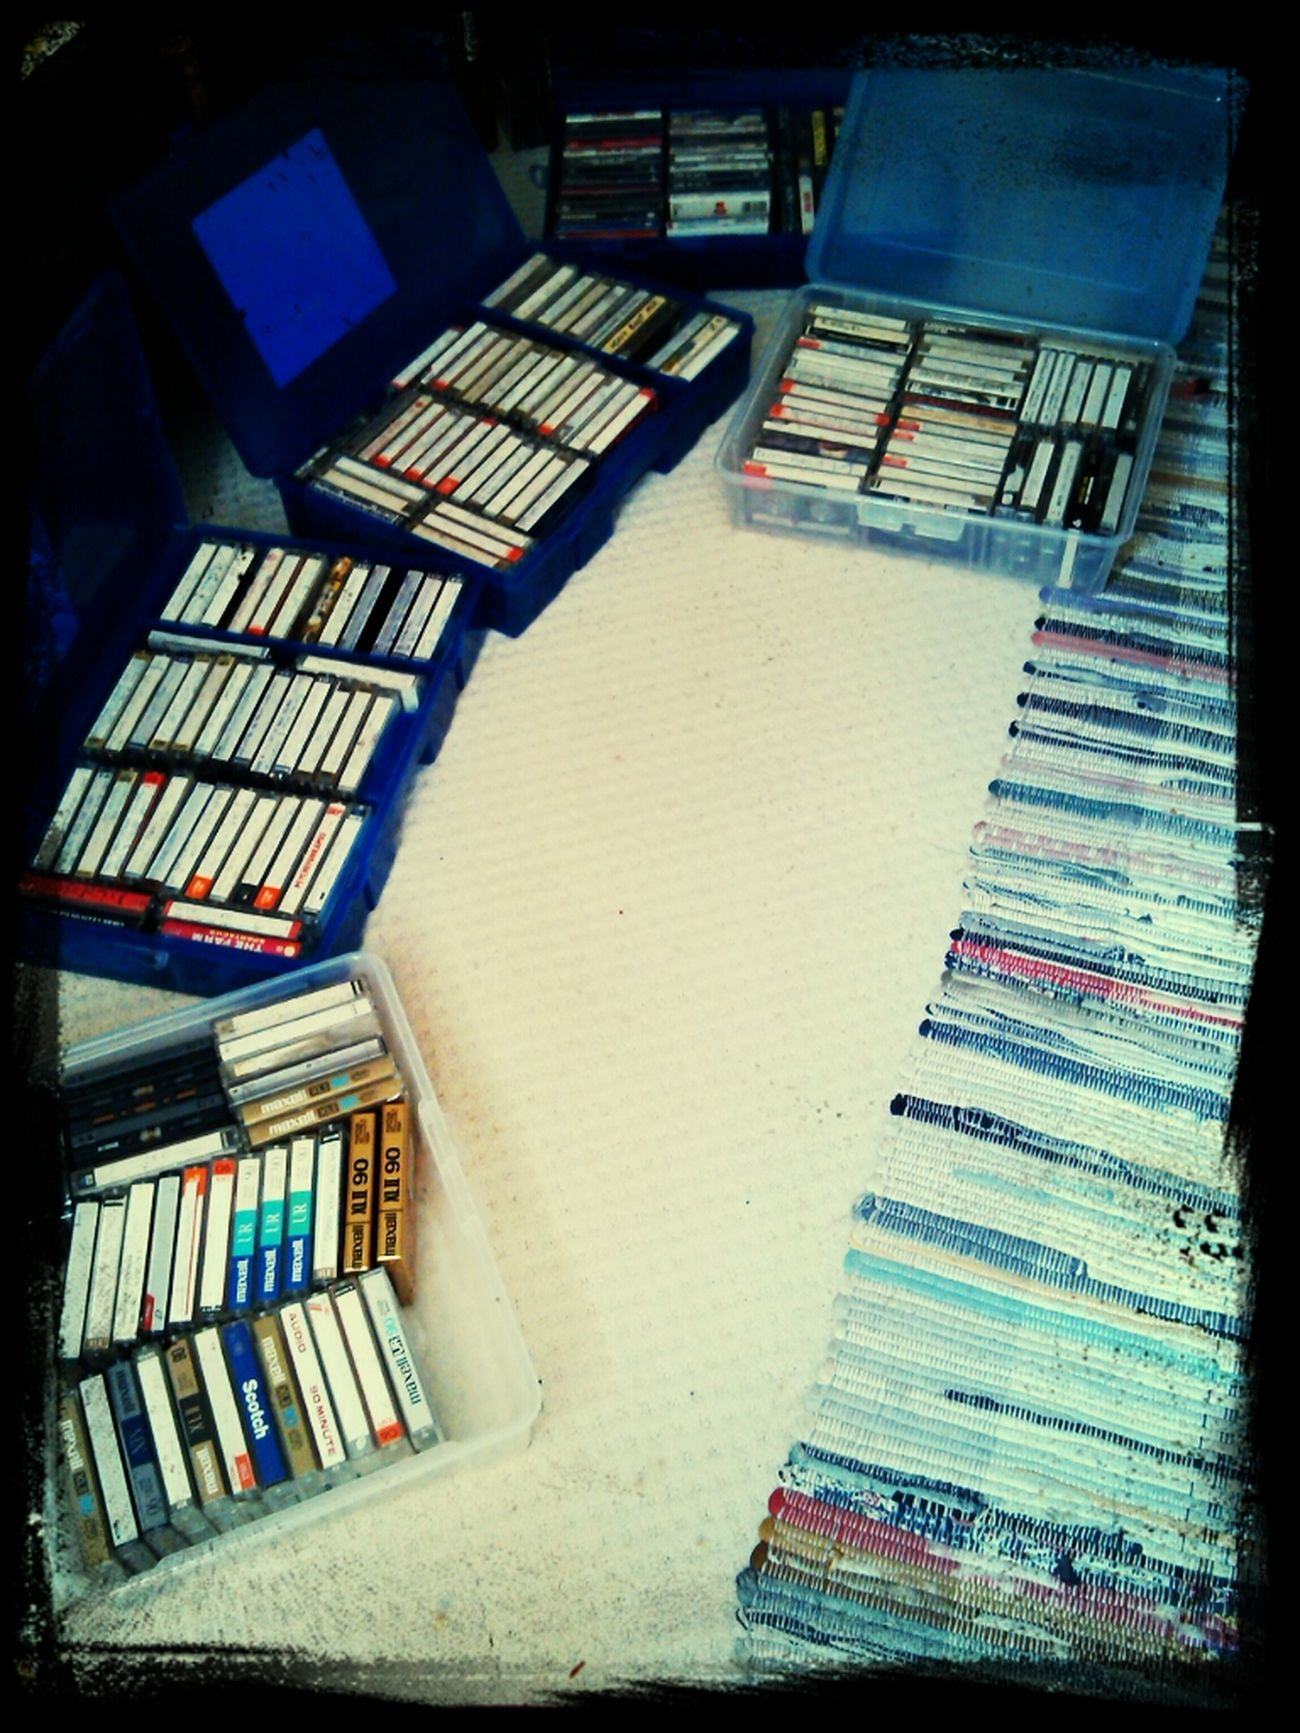 My Next Project... Digitising All Of These